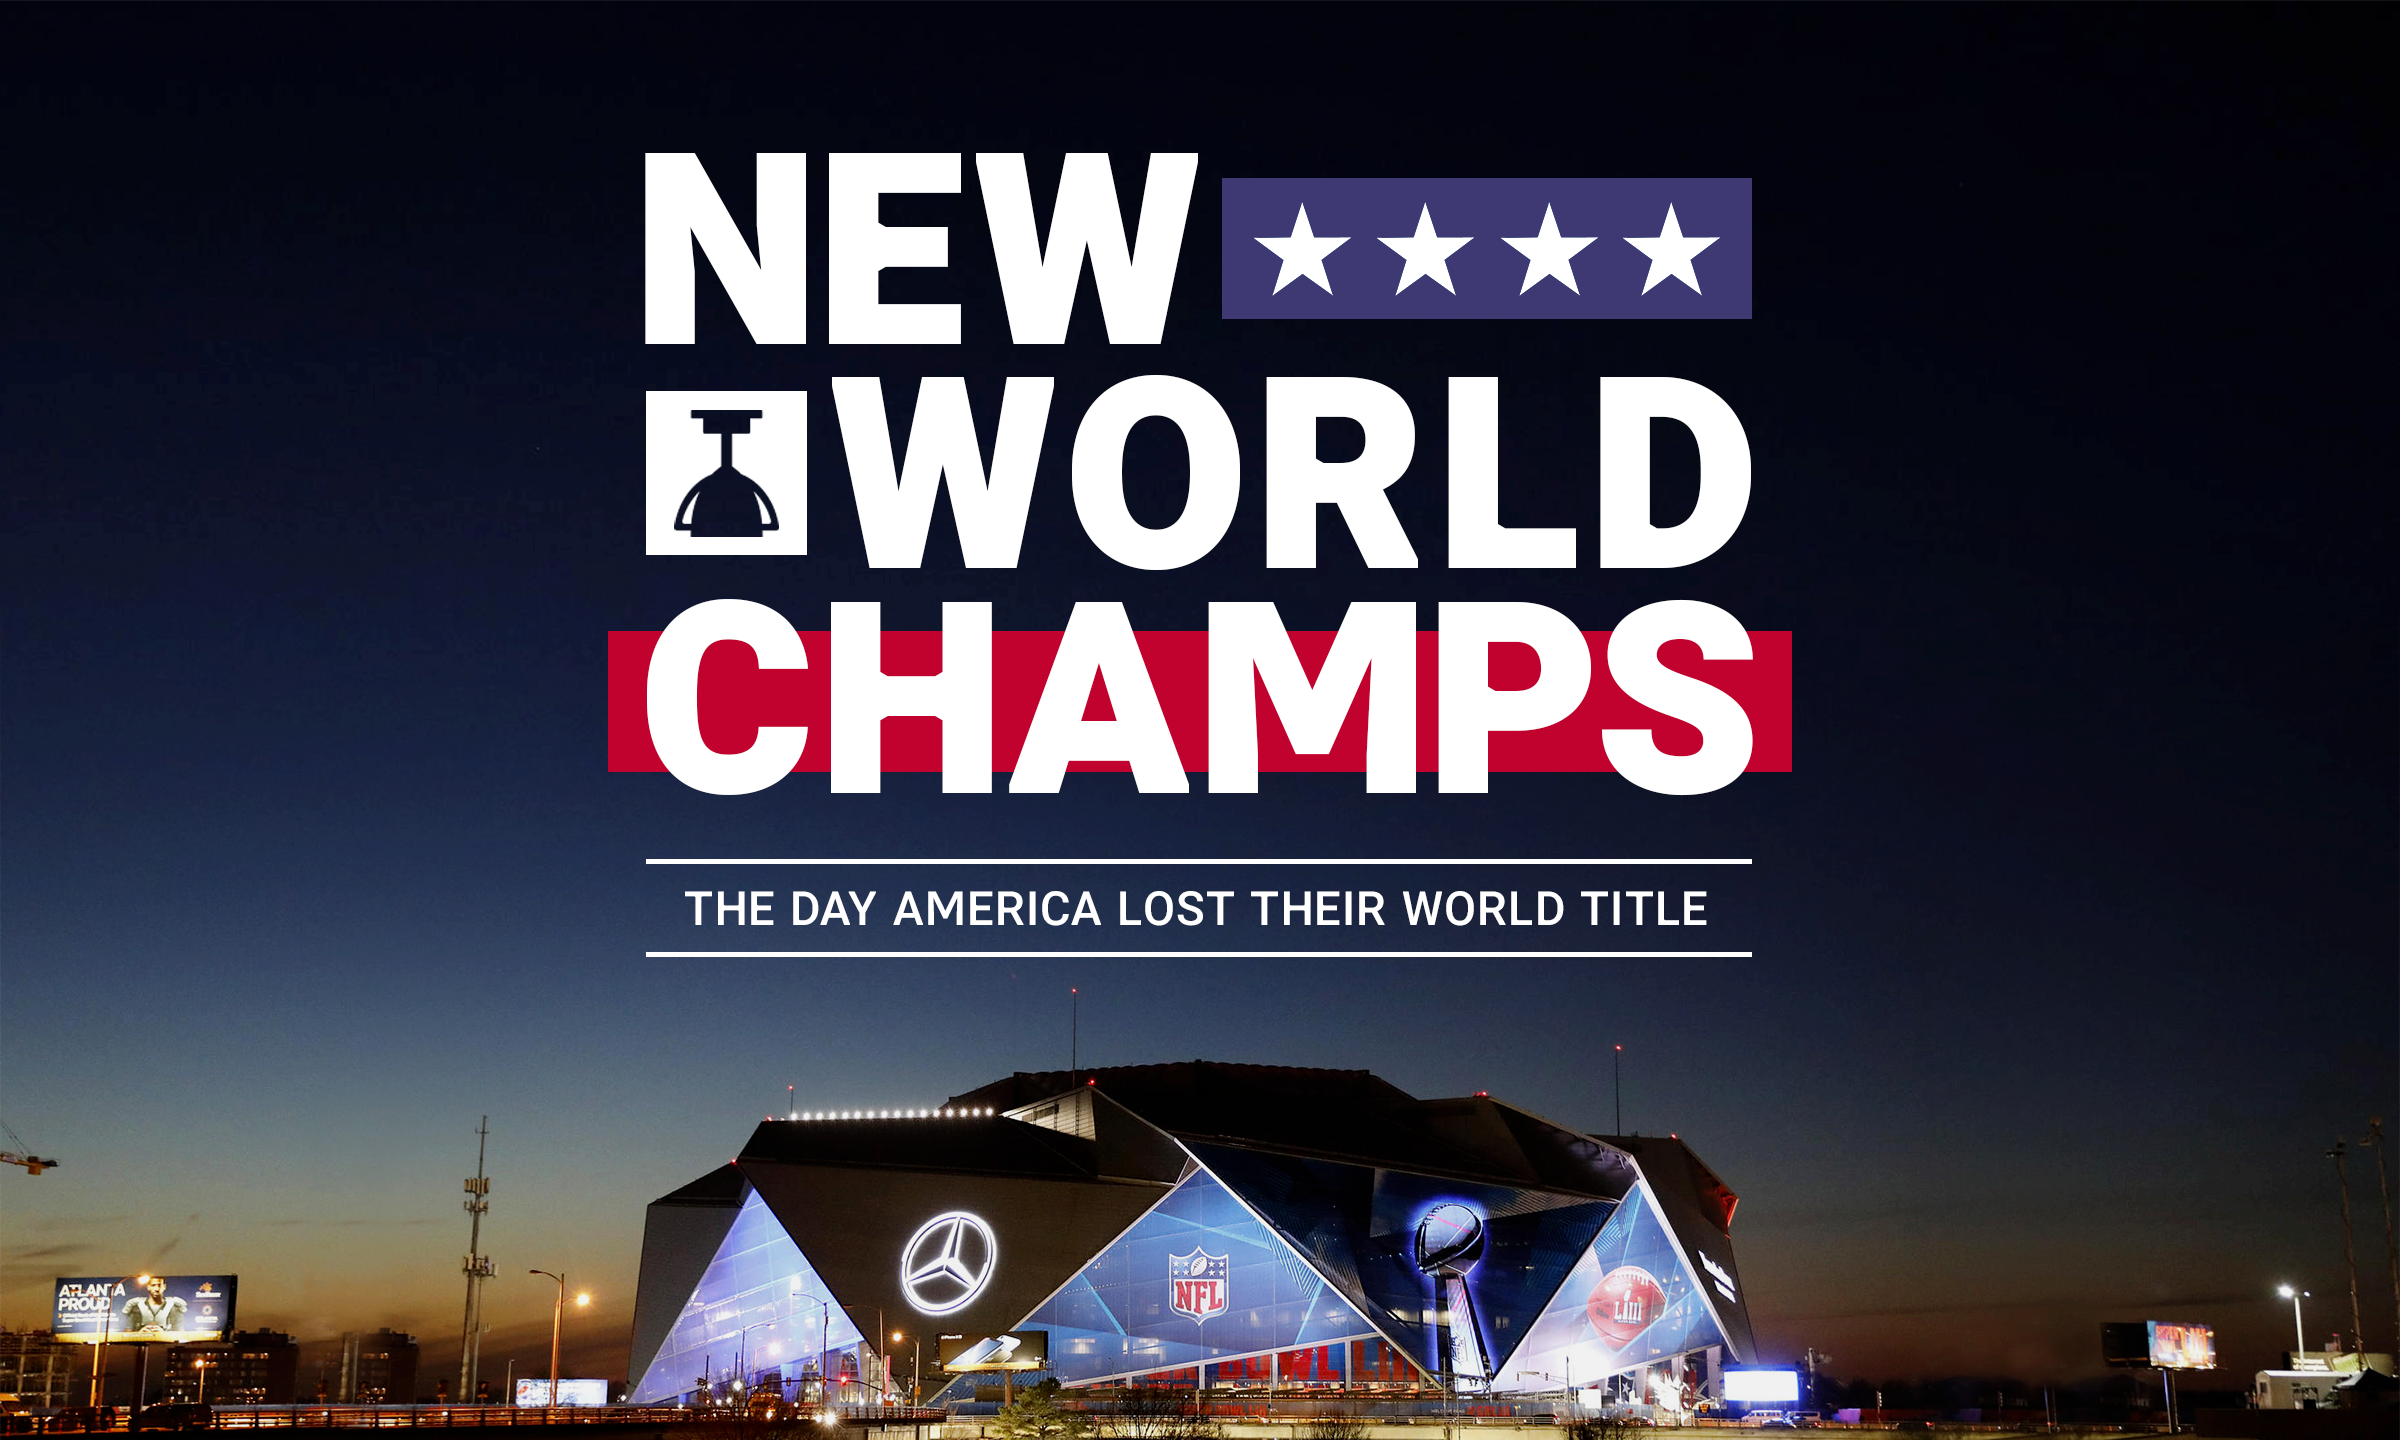 NRL_NewWorldChamps_01.png